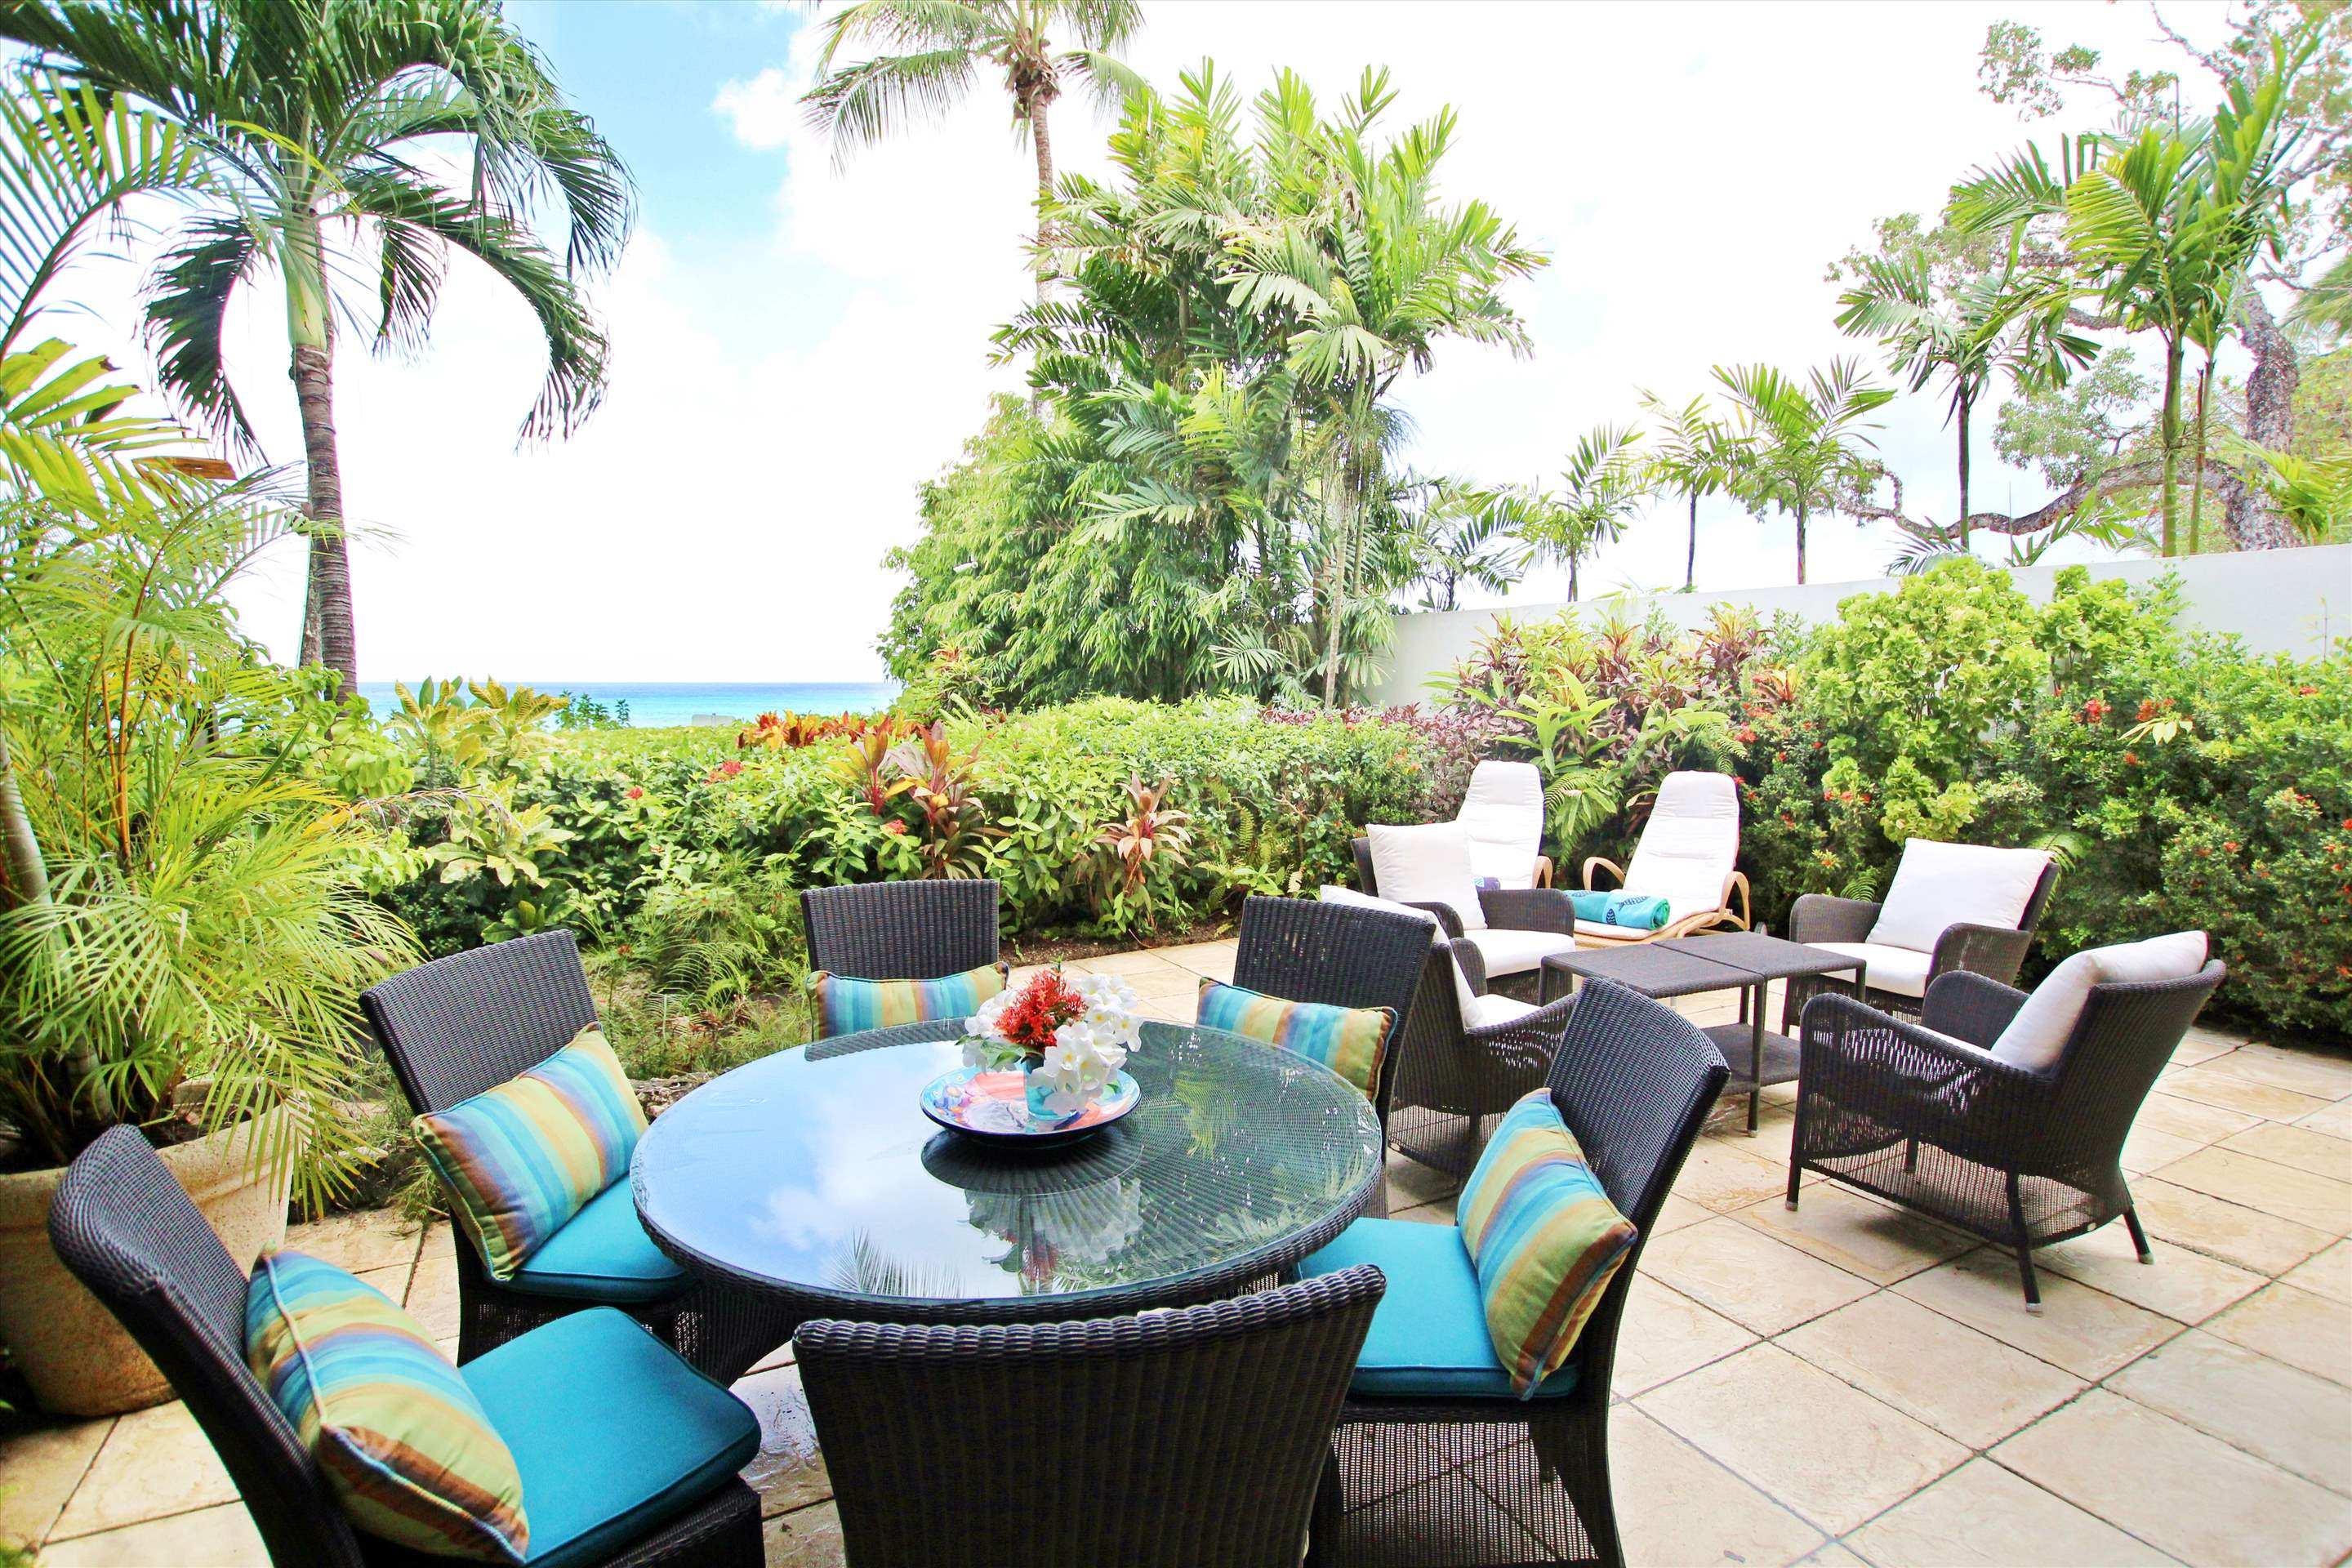 Coral Cove 3 Green Flash, 2 bedroom apartment in St. James & West Coast, Barbados Photo #6